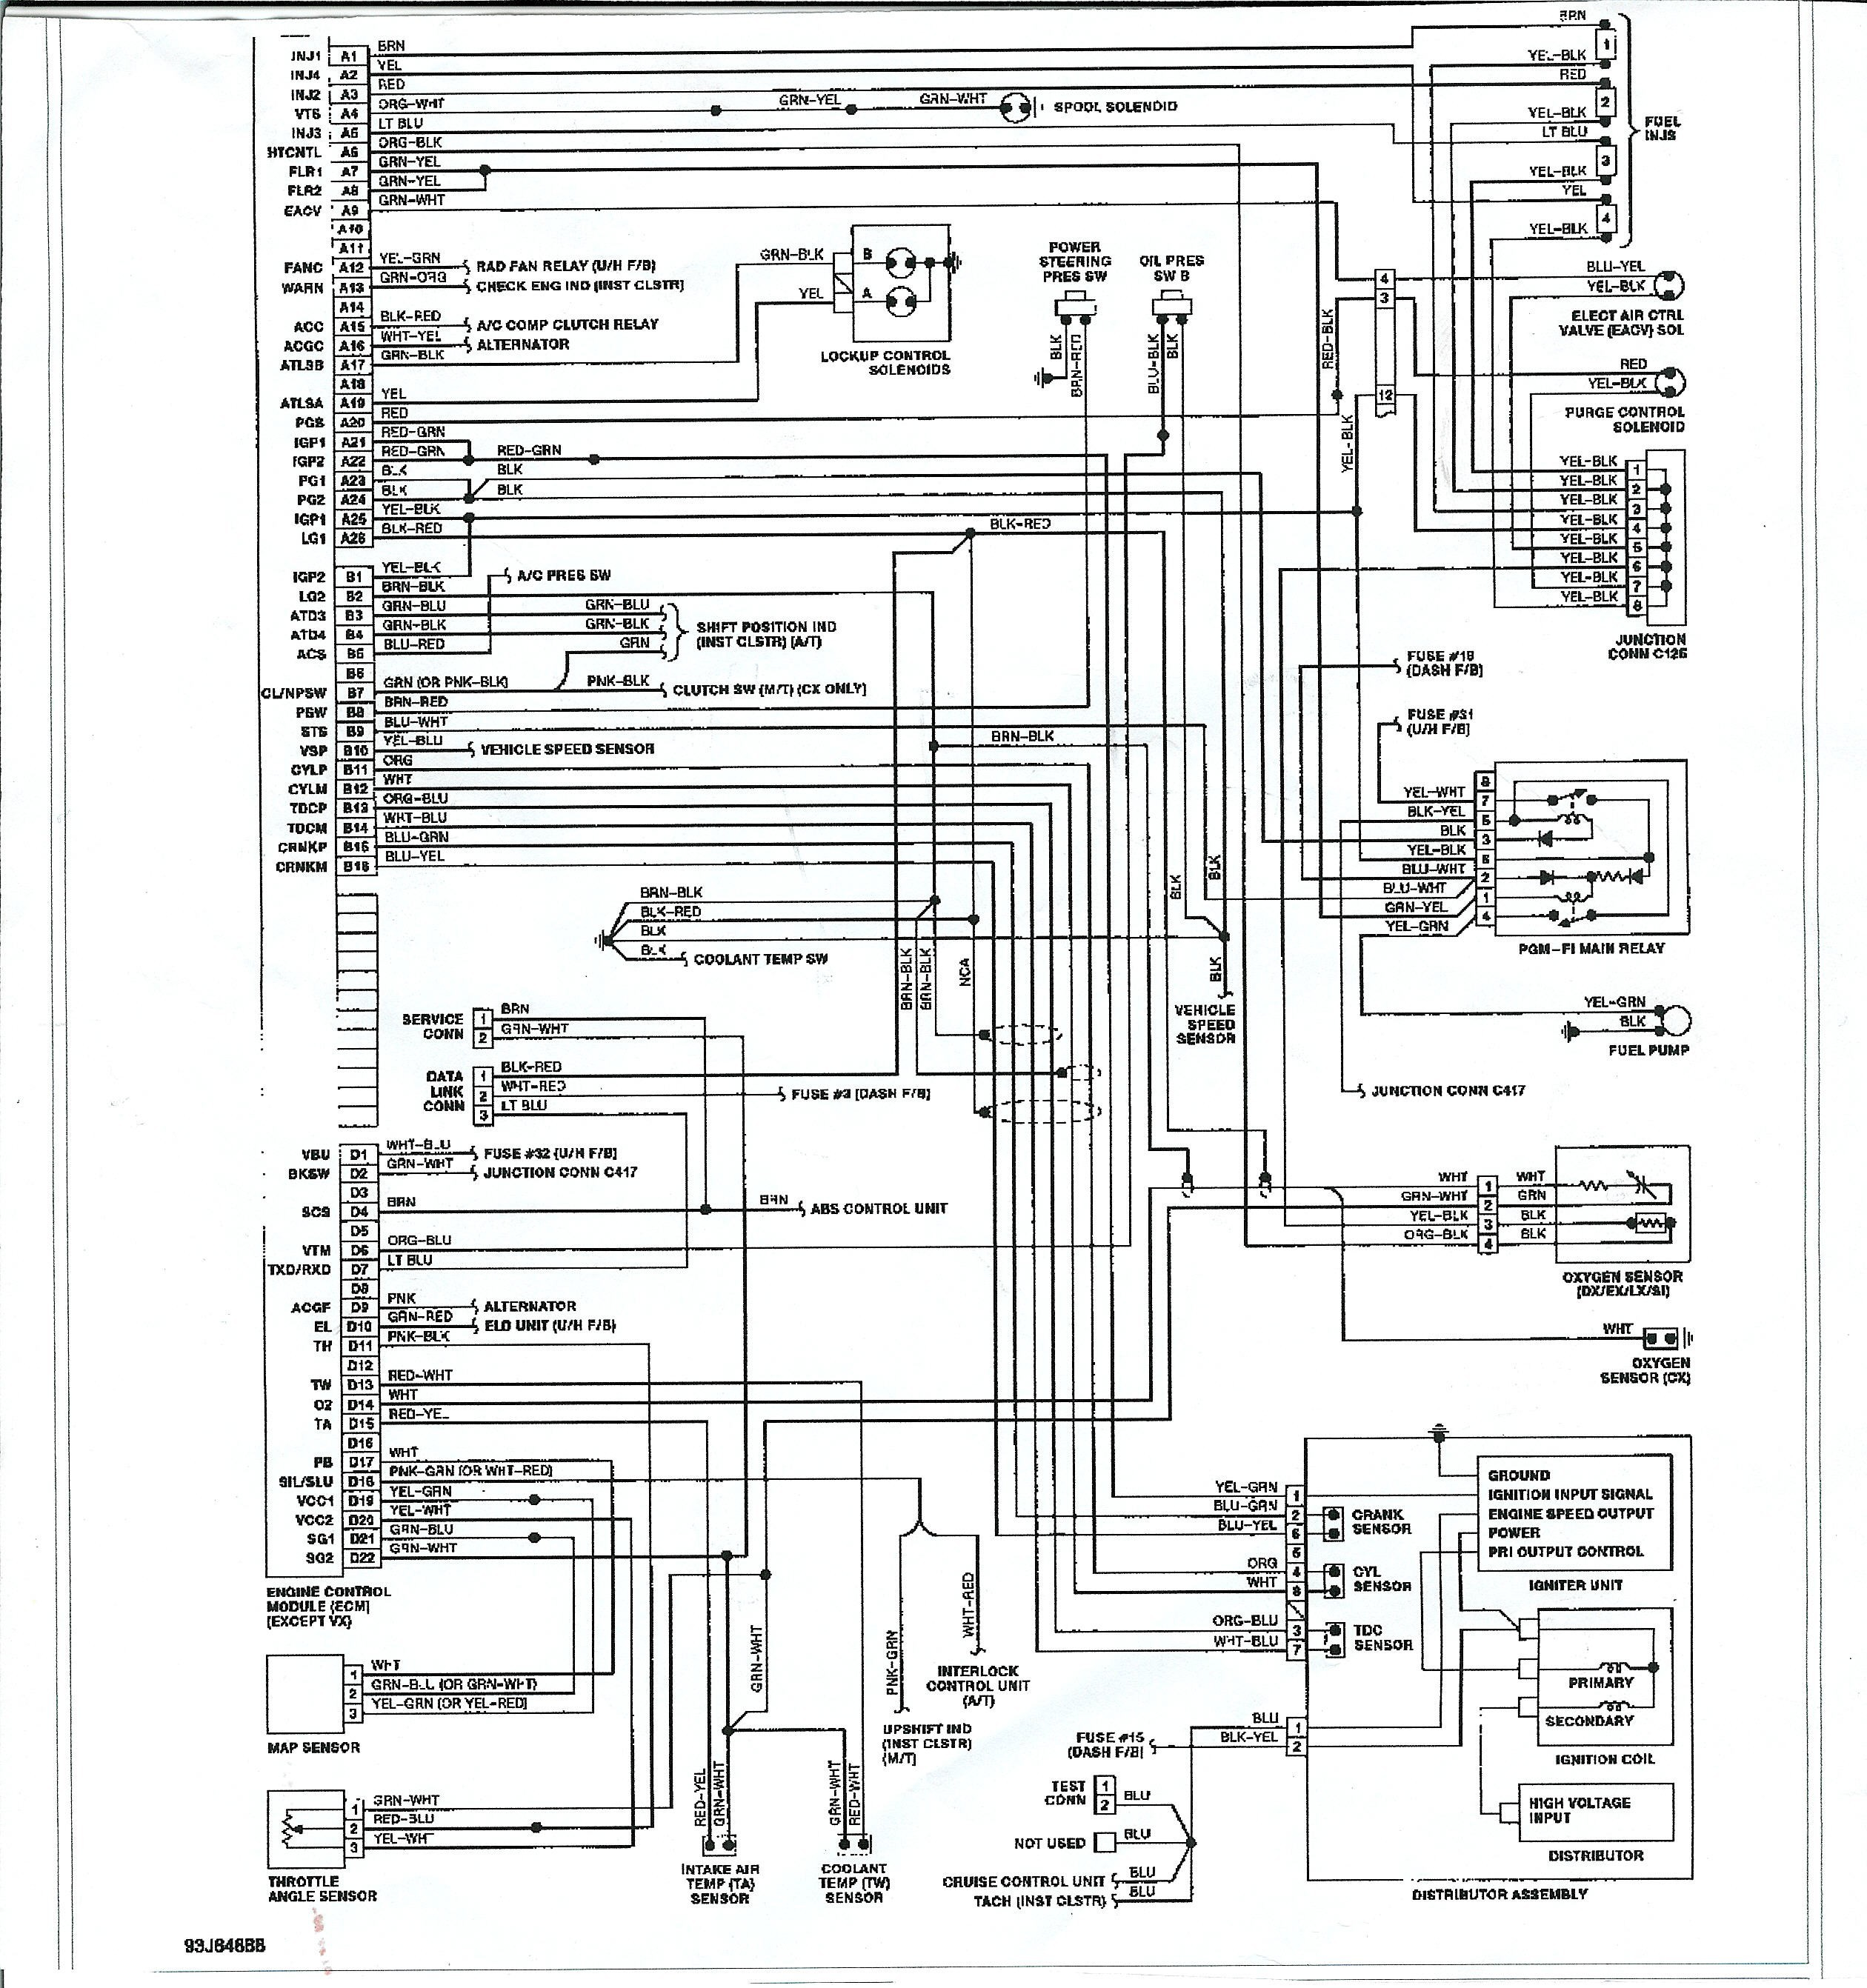 Honda Civic 2003 Wiring Diagram